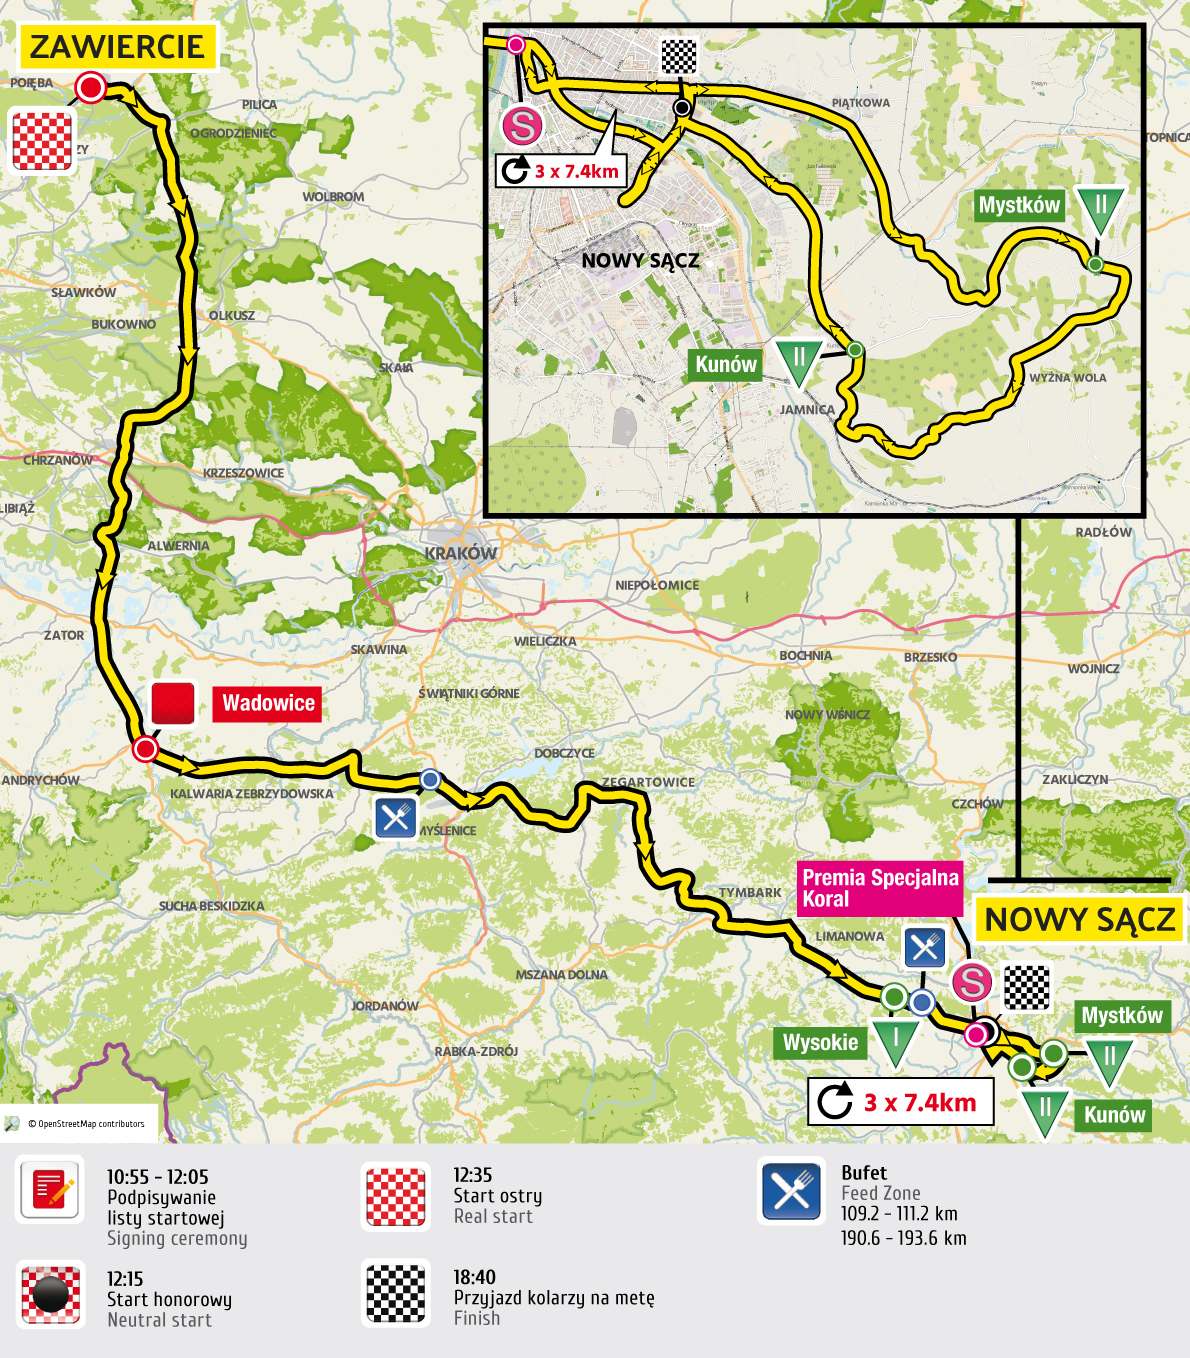 etap 3 mapa Tour de Pologne 2016 UCI World Tour